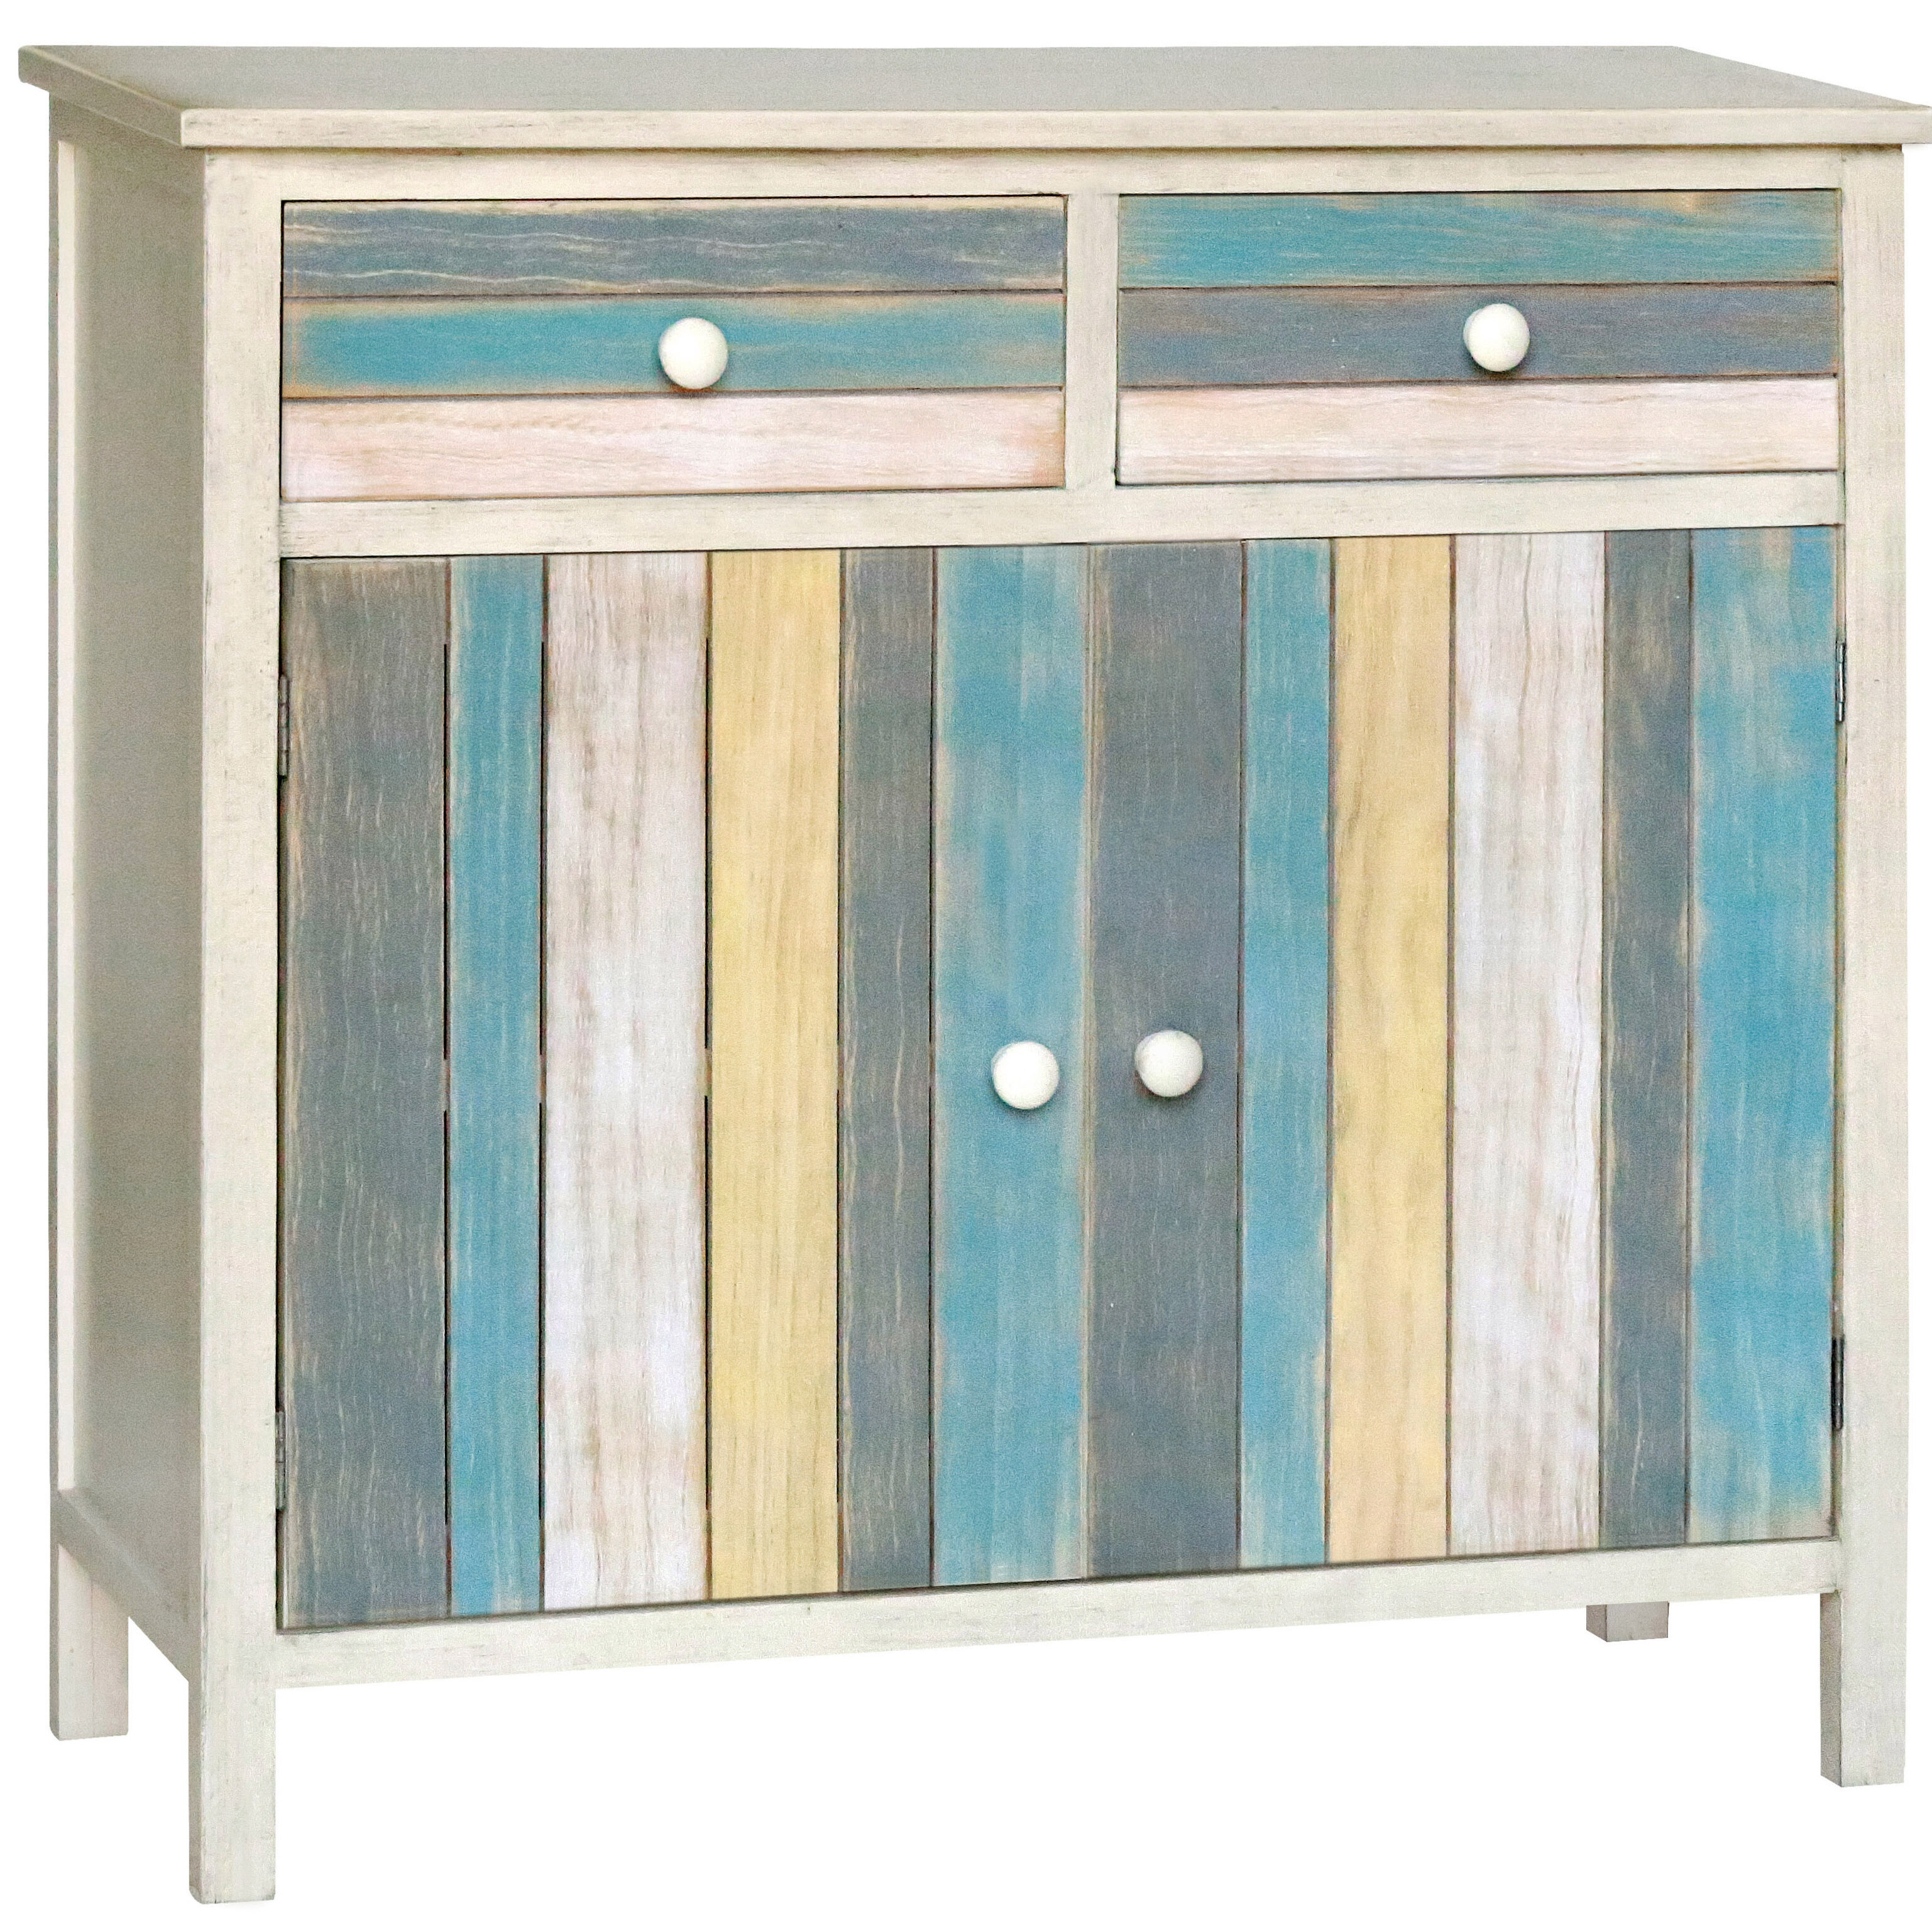 Gallerie Decor Seaside 2 Drawer and 2 Doors Accent Cabinet & Reviews ...